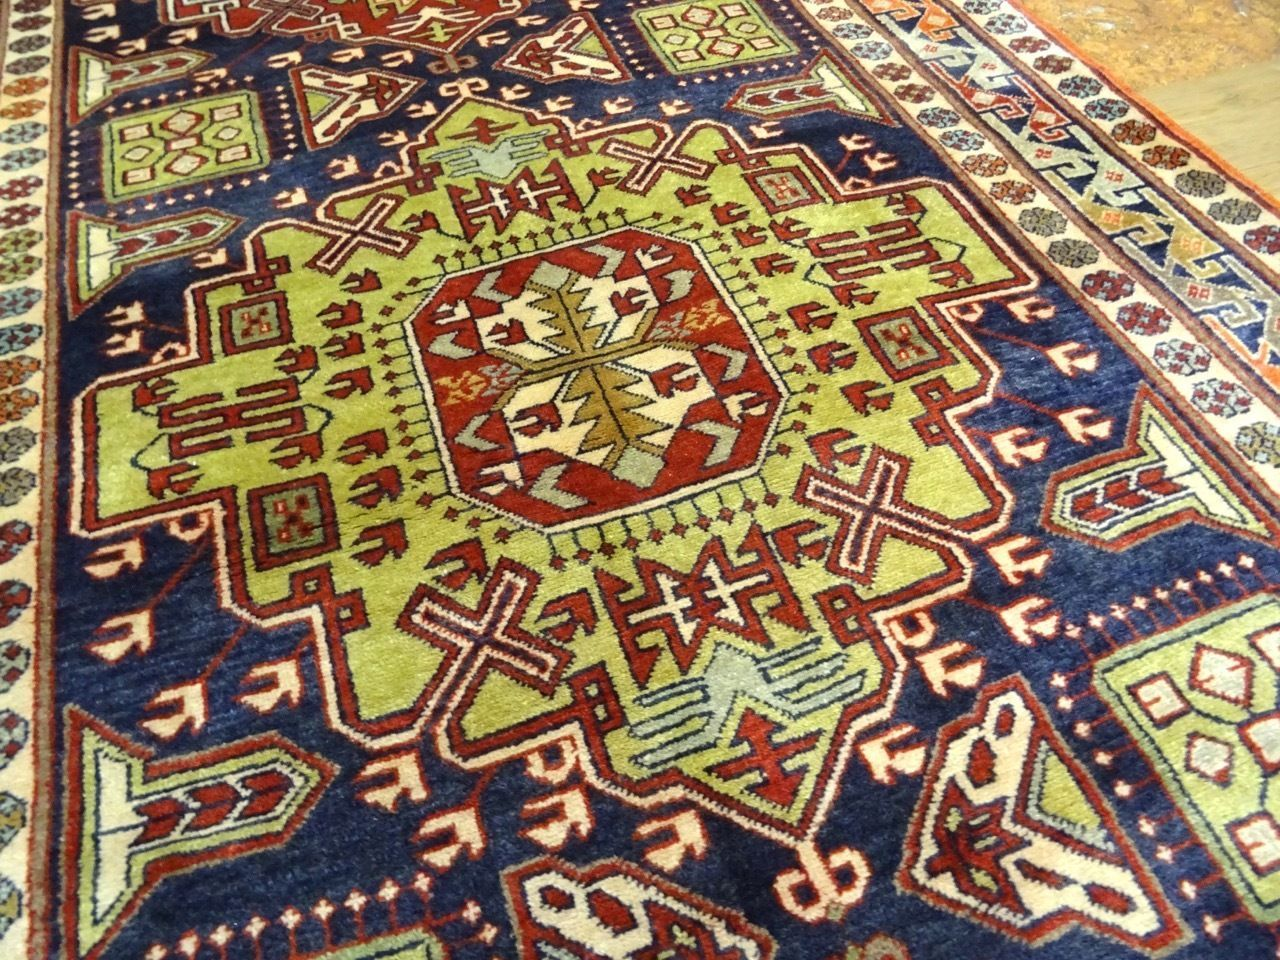 """#Antiques #Gifts Cr.1930 Antique Caucasian Armenian NW Persian Exquisite Rug 4' 4"""" x 10' 2"""" #Collectors"""